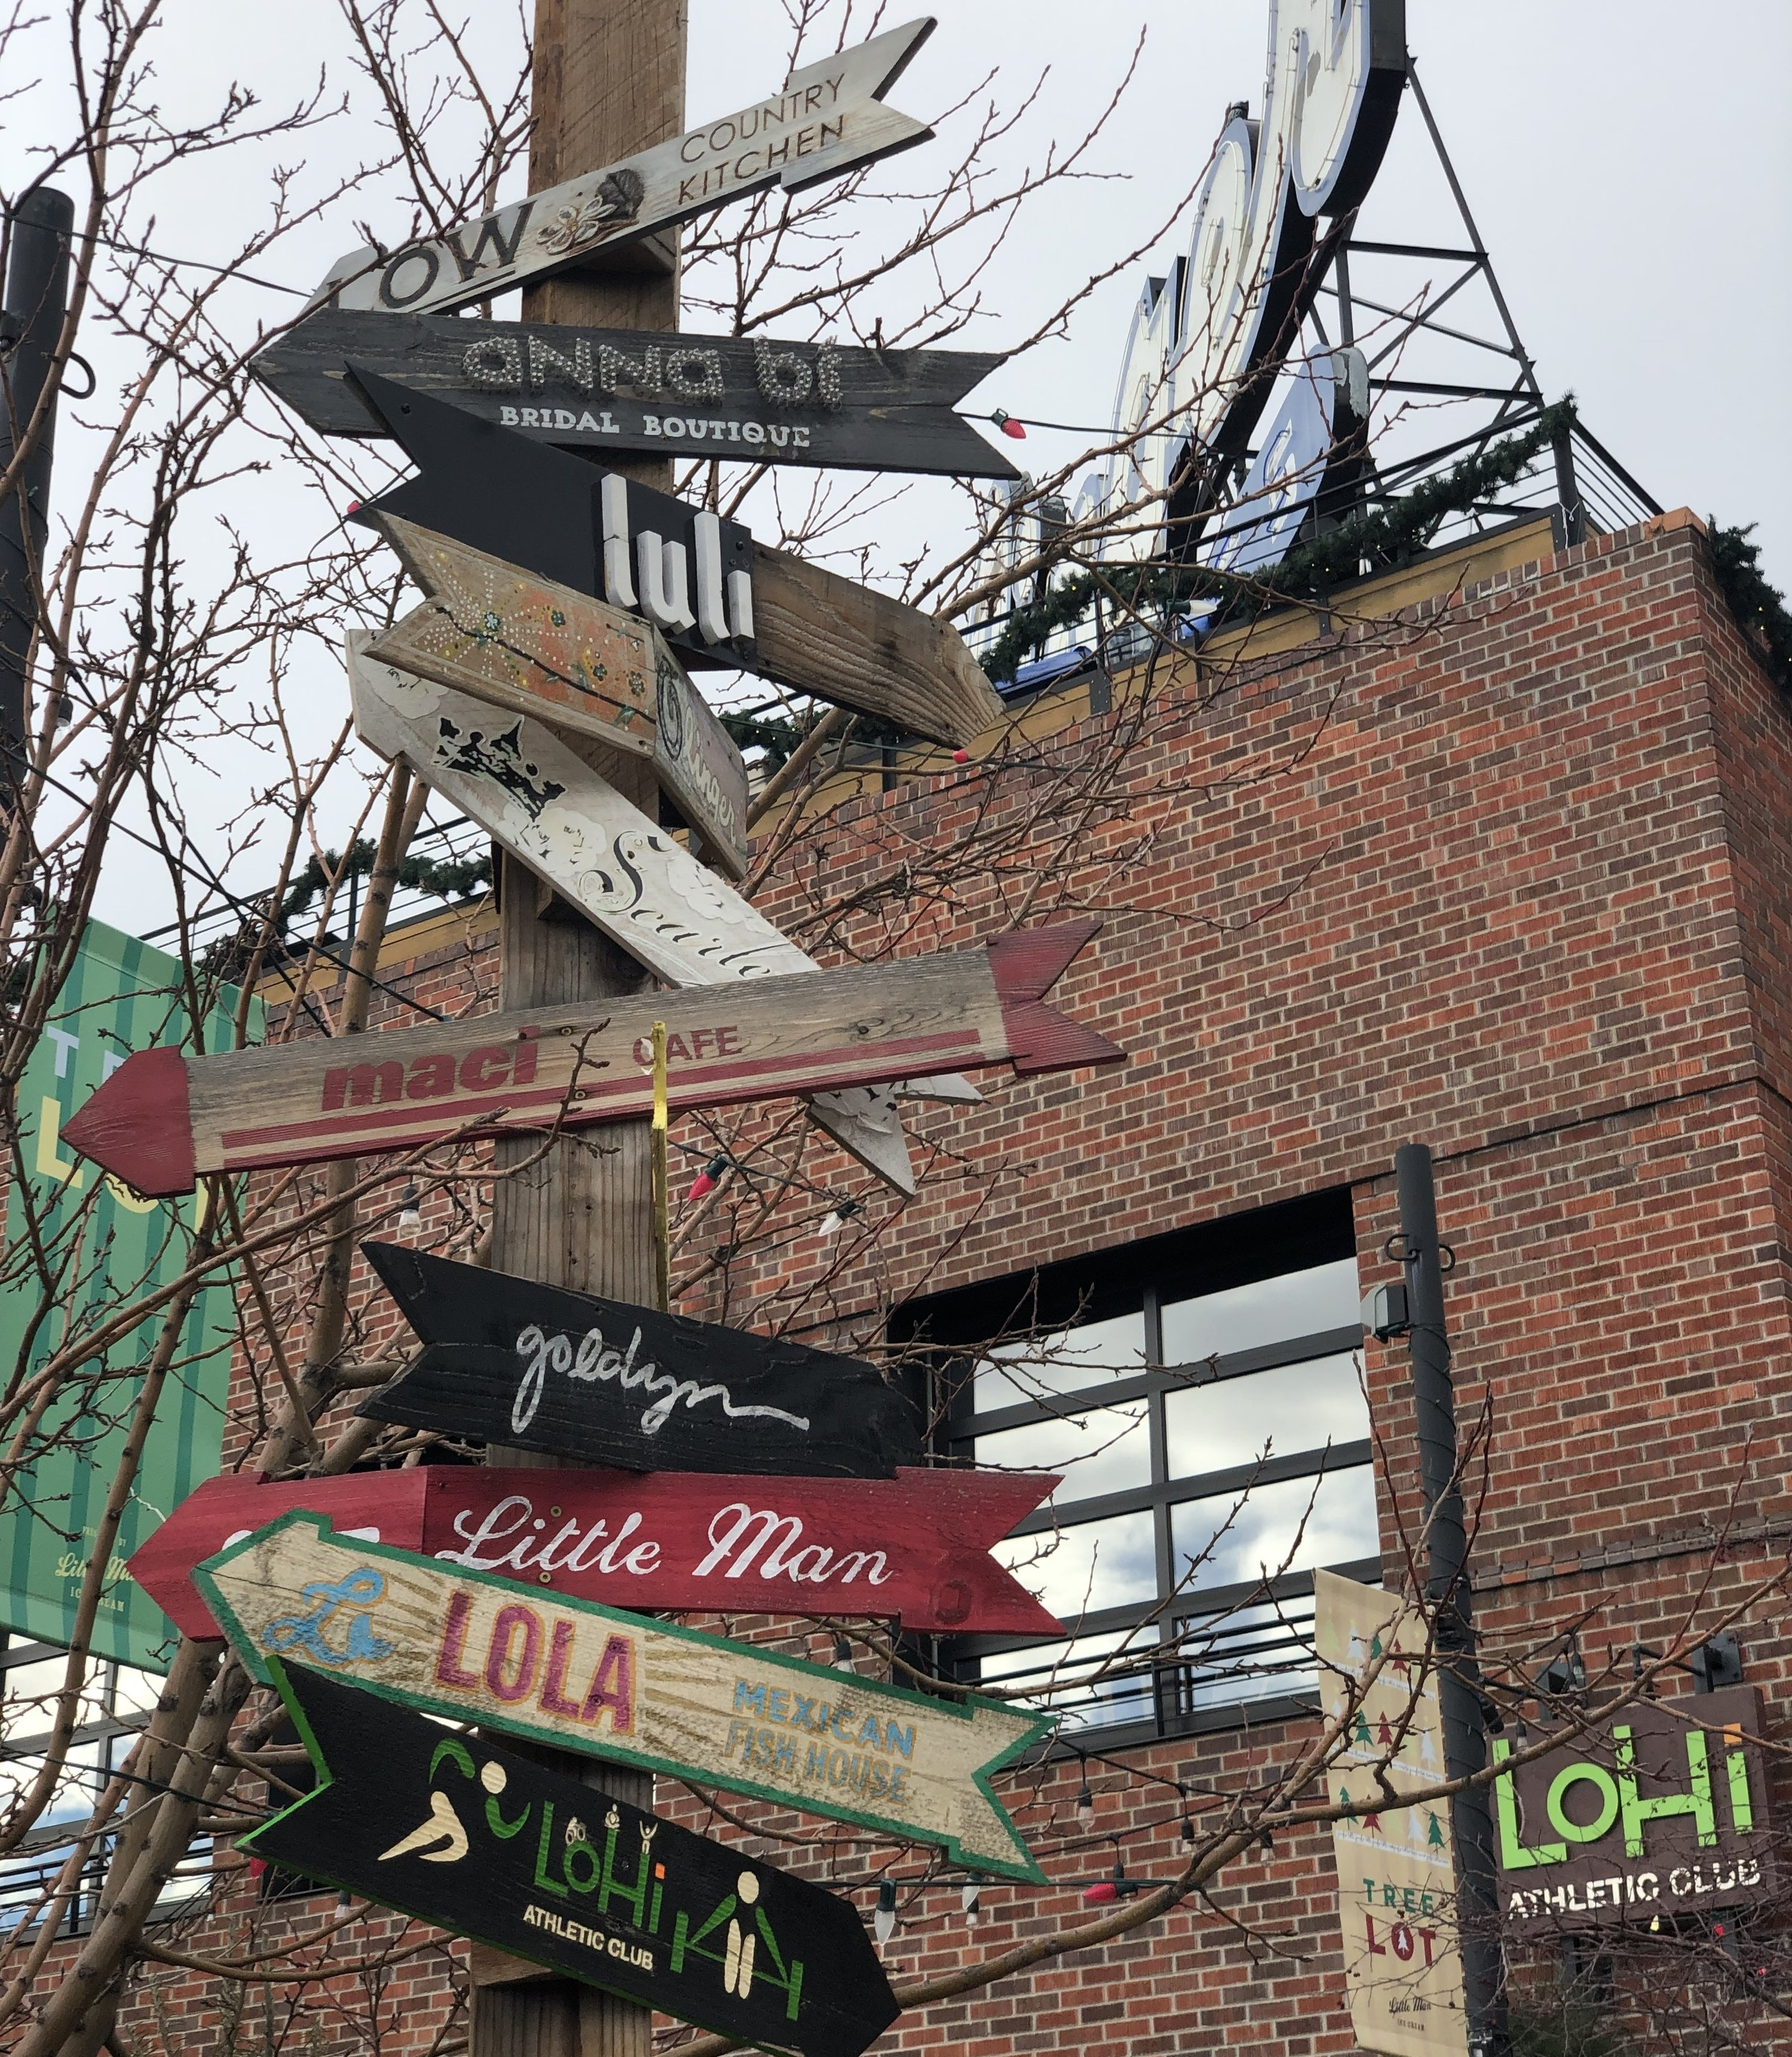 LoHi - Foodie places for foodie friends